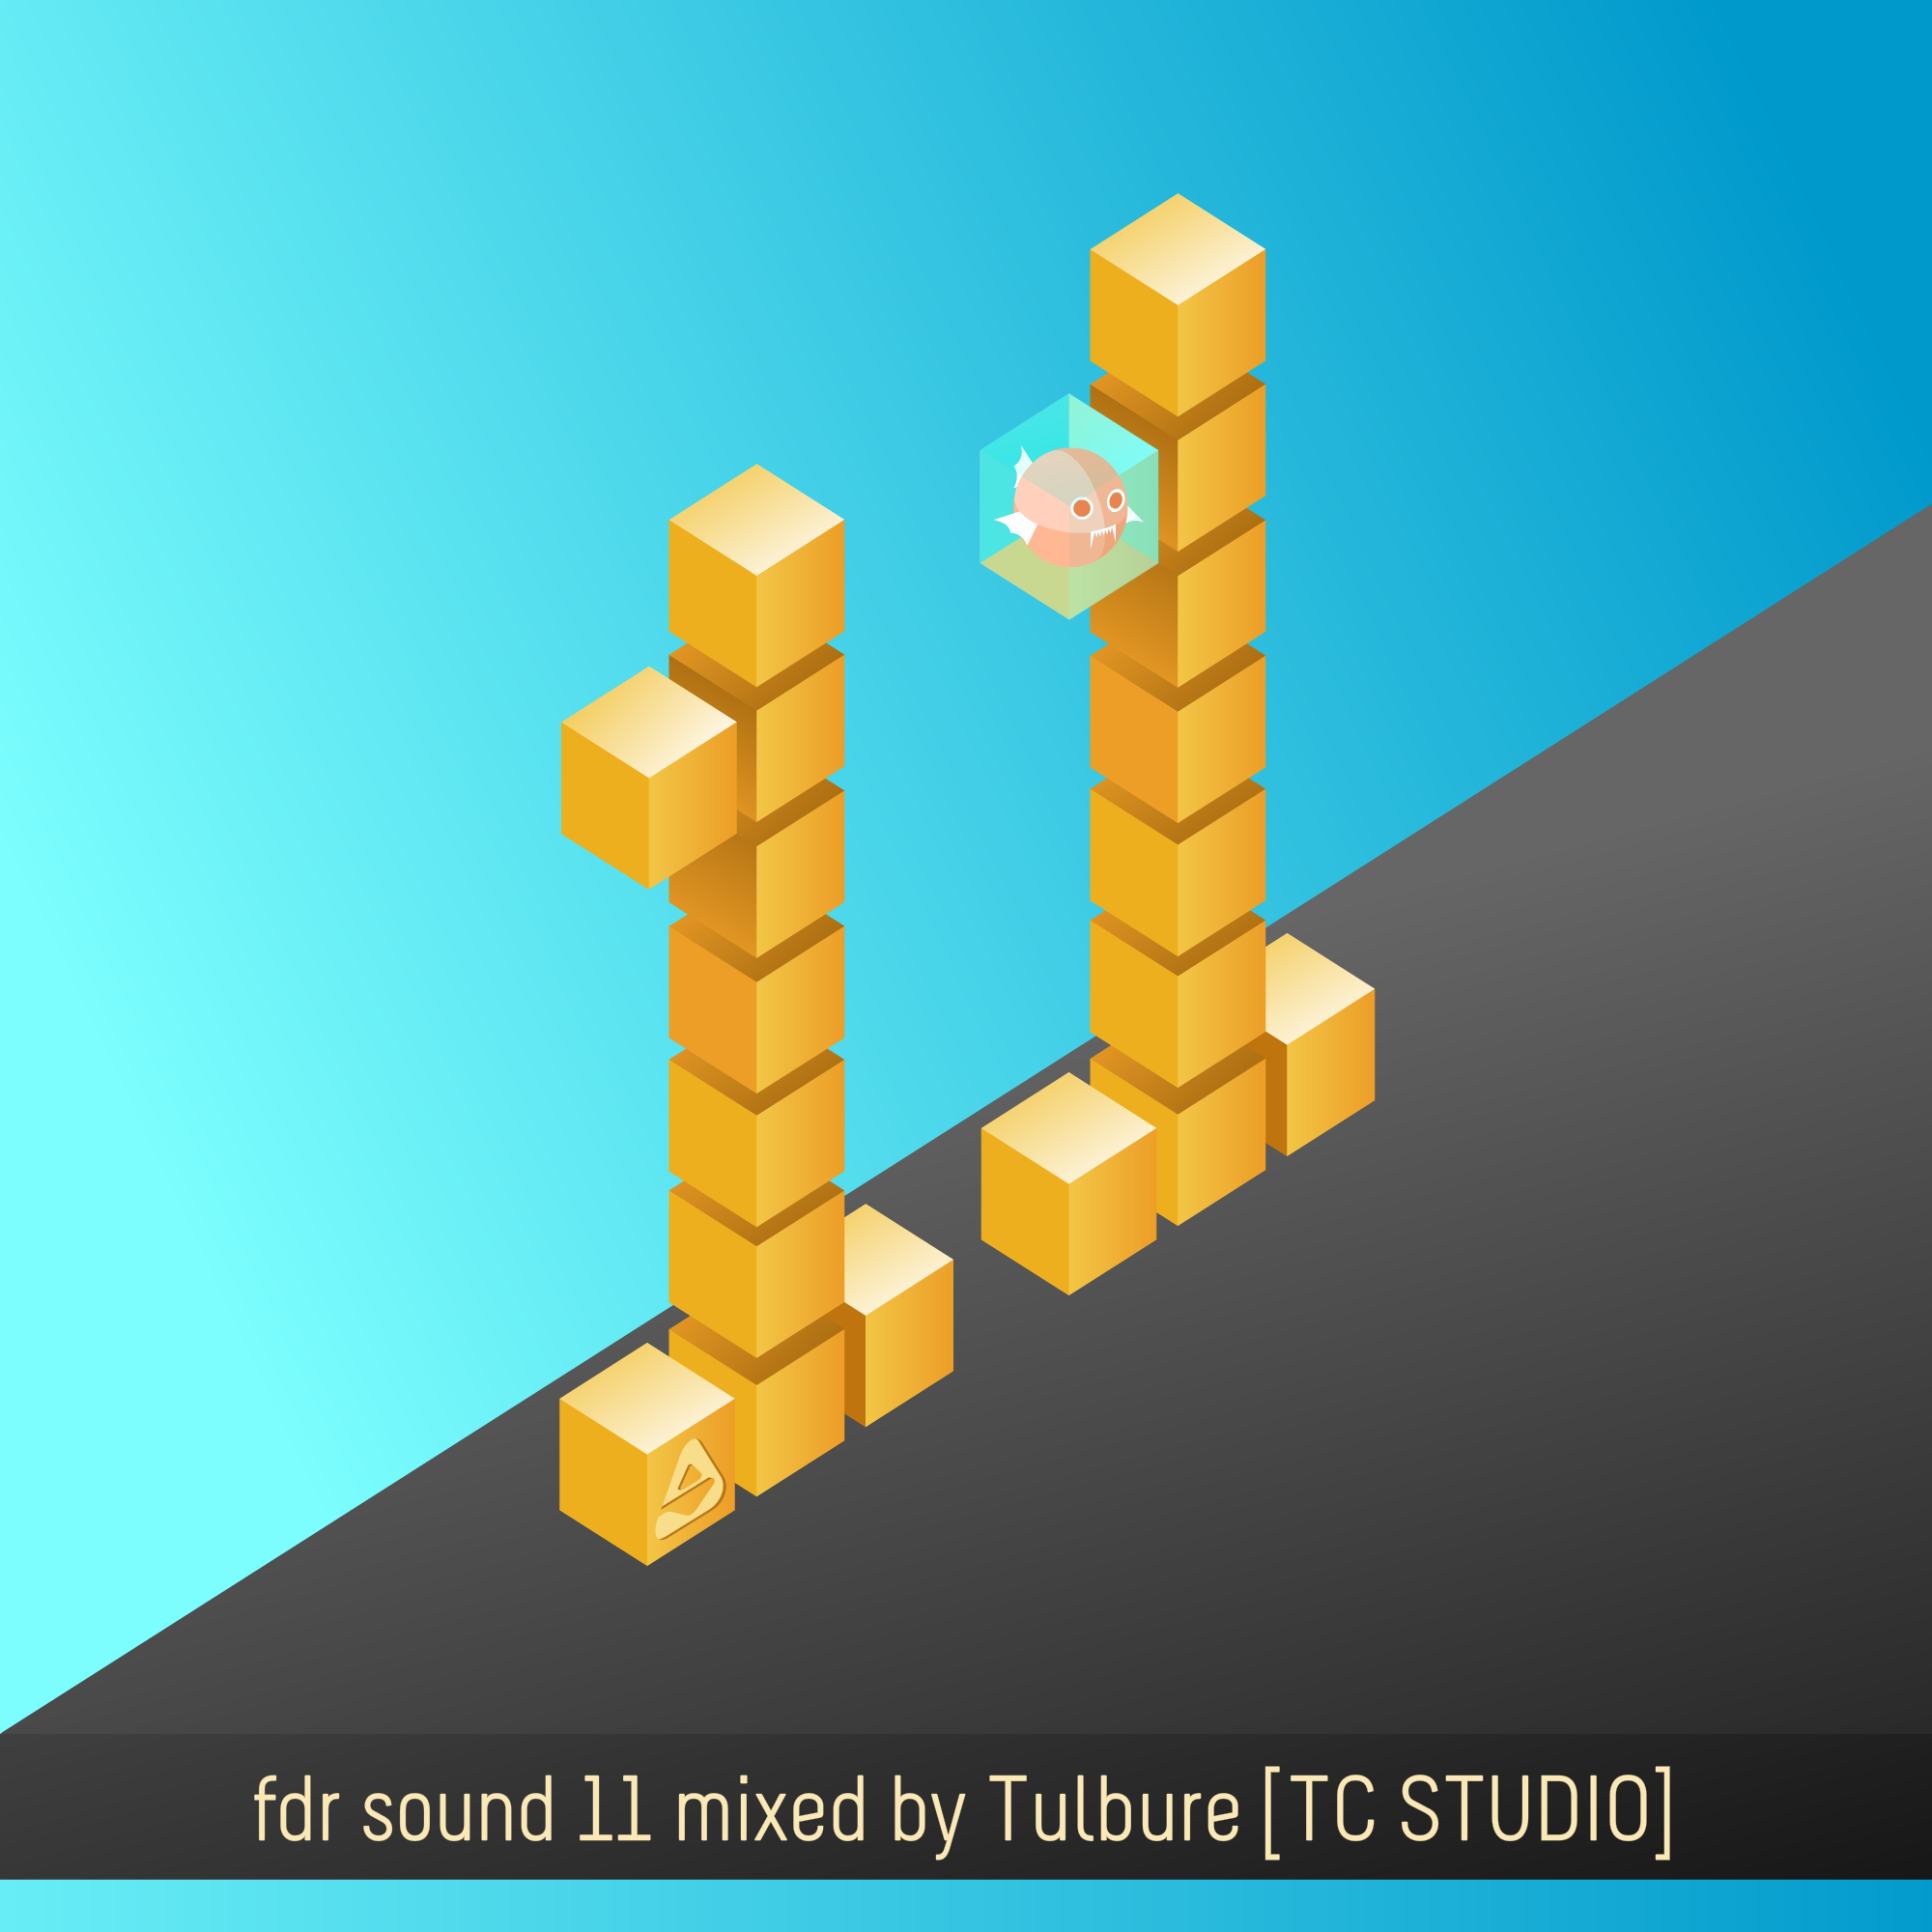 feeder sound 11 mixed by Tulbure [TC Studio]